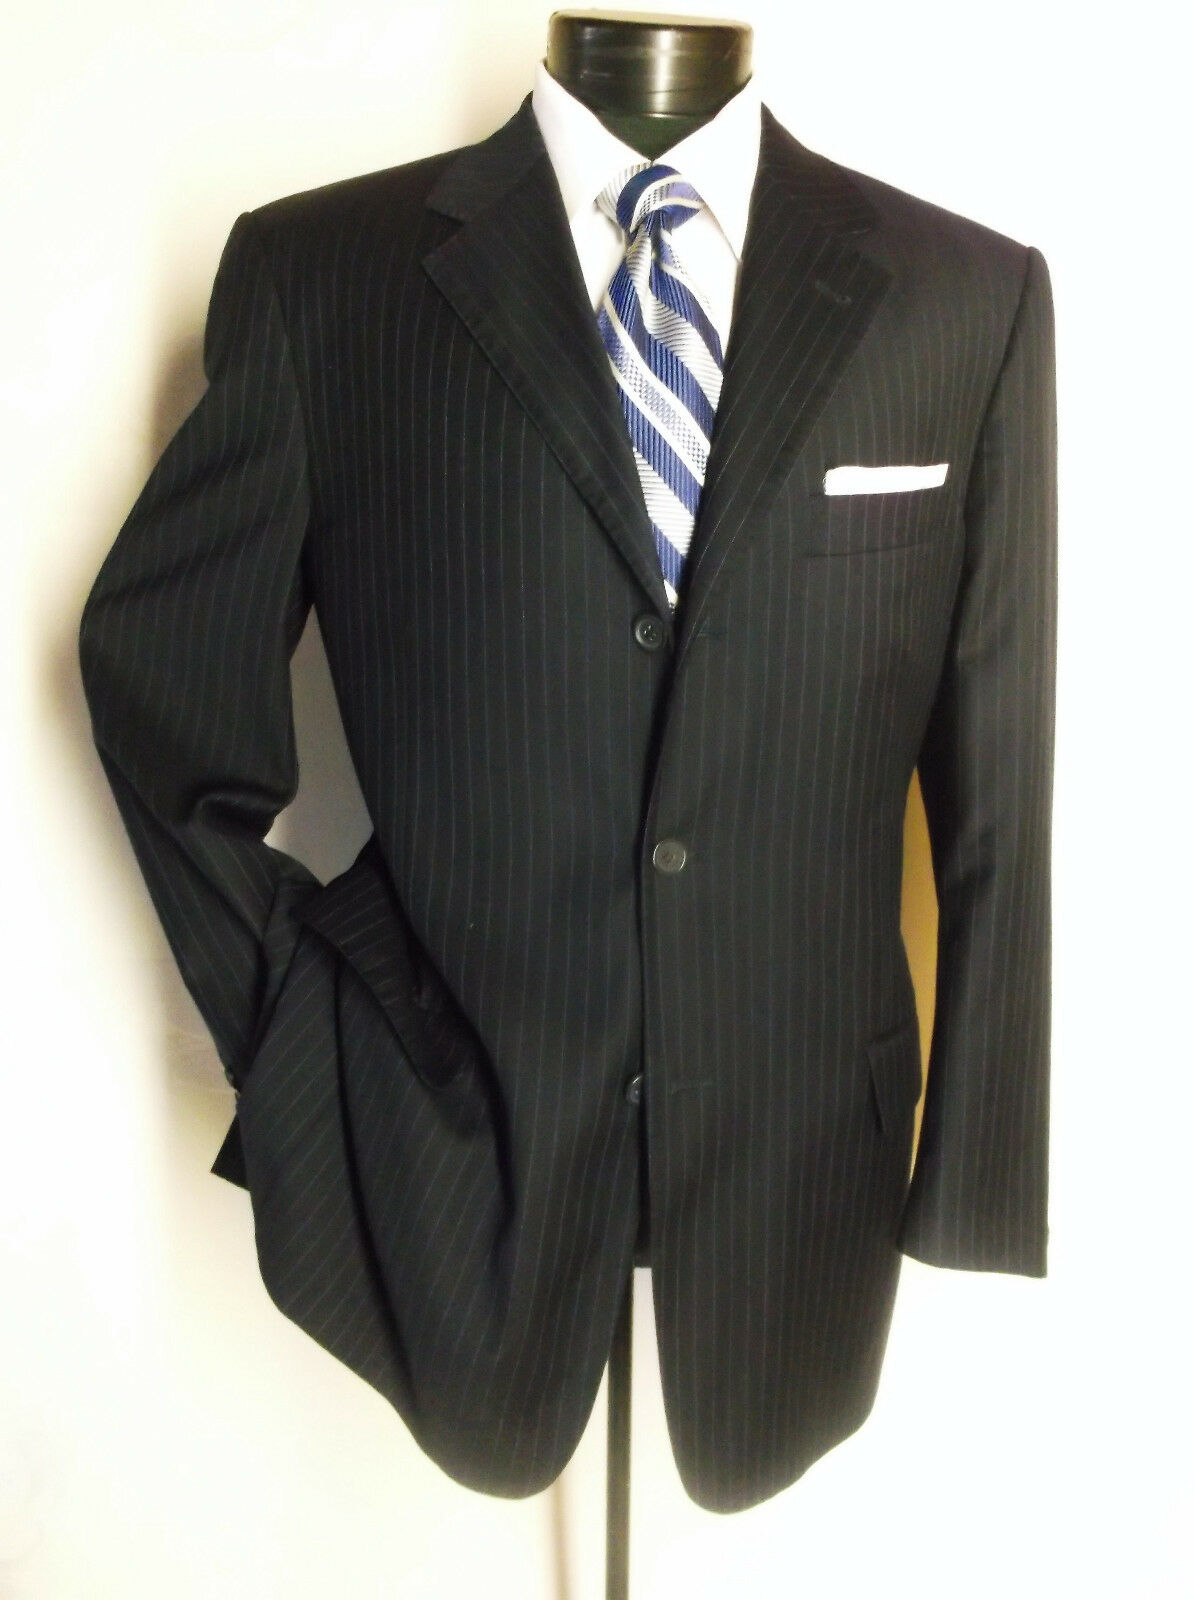 Bernini Suit Navy Blau Striped 3 Button 40S Pants 34 x 25 1/2